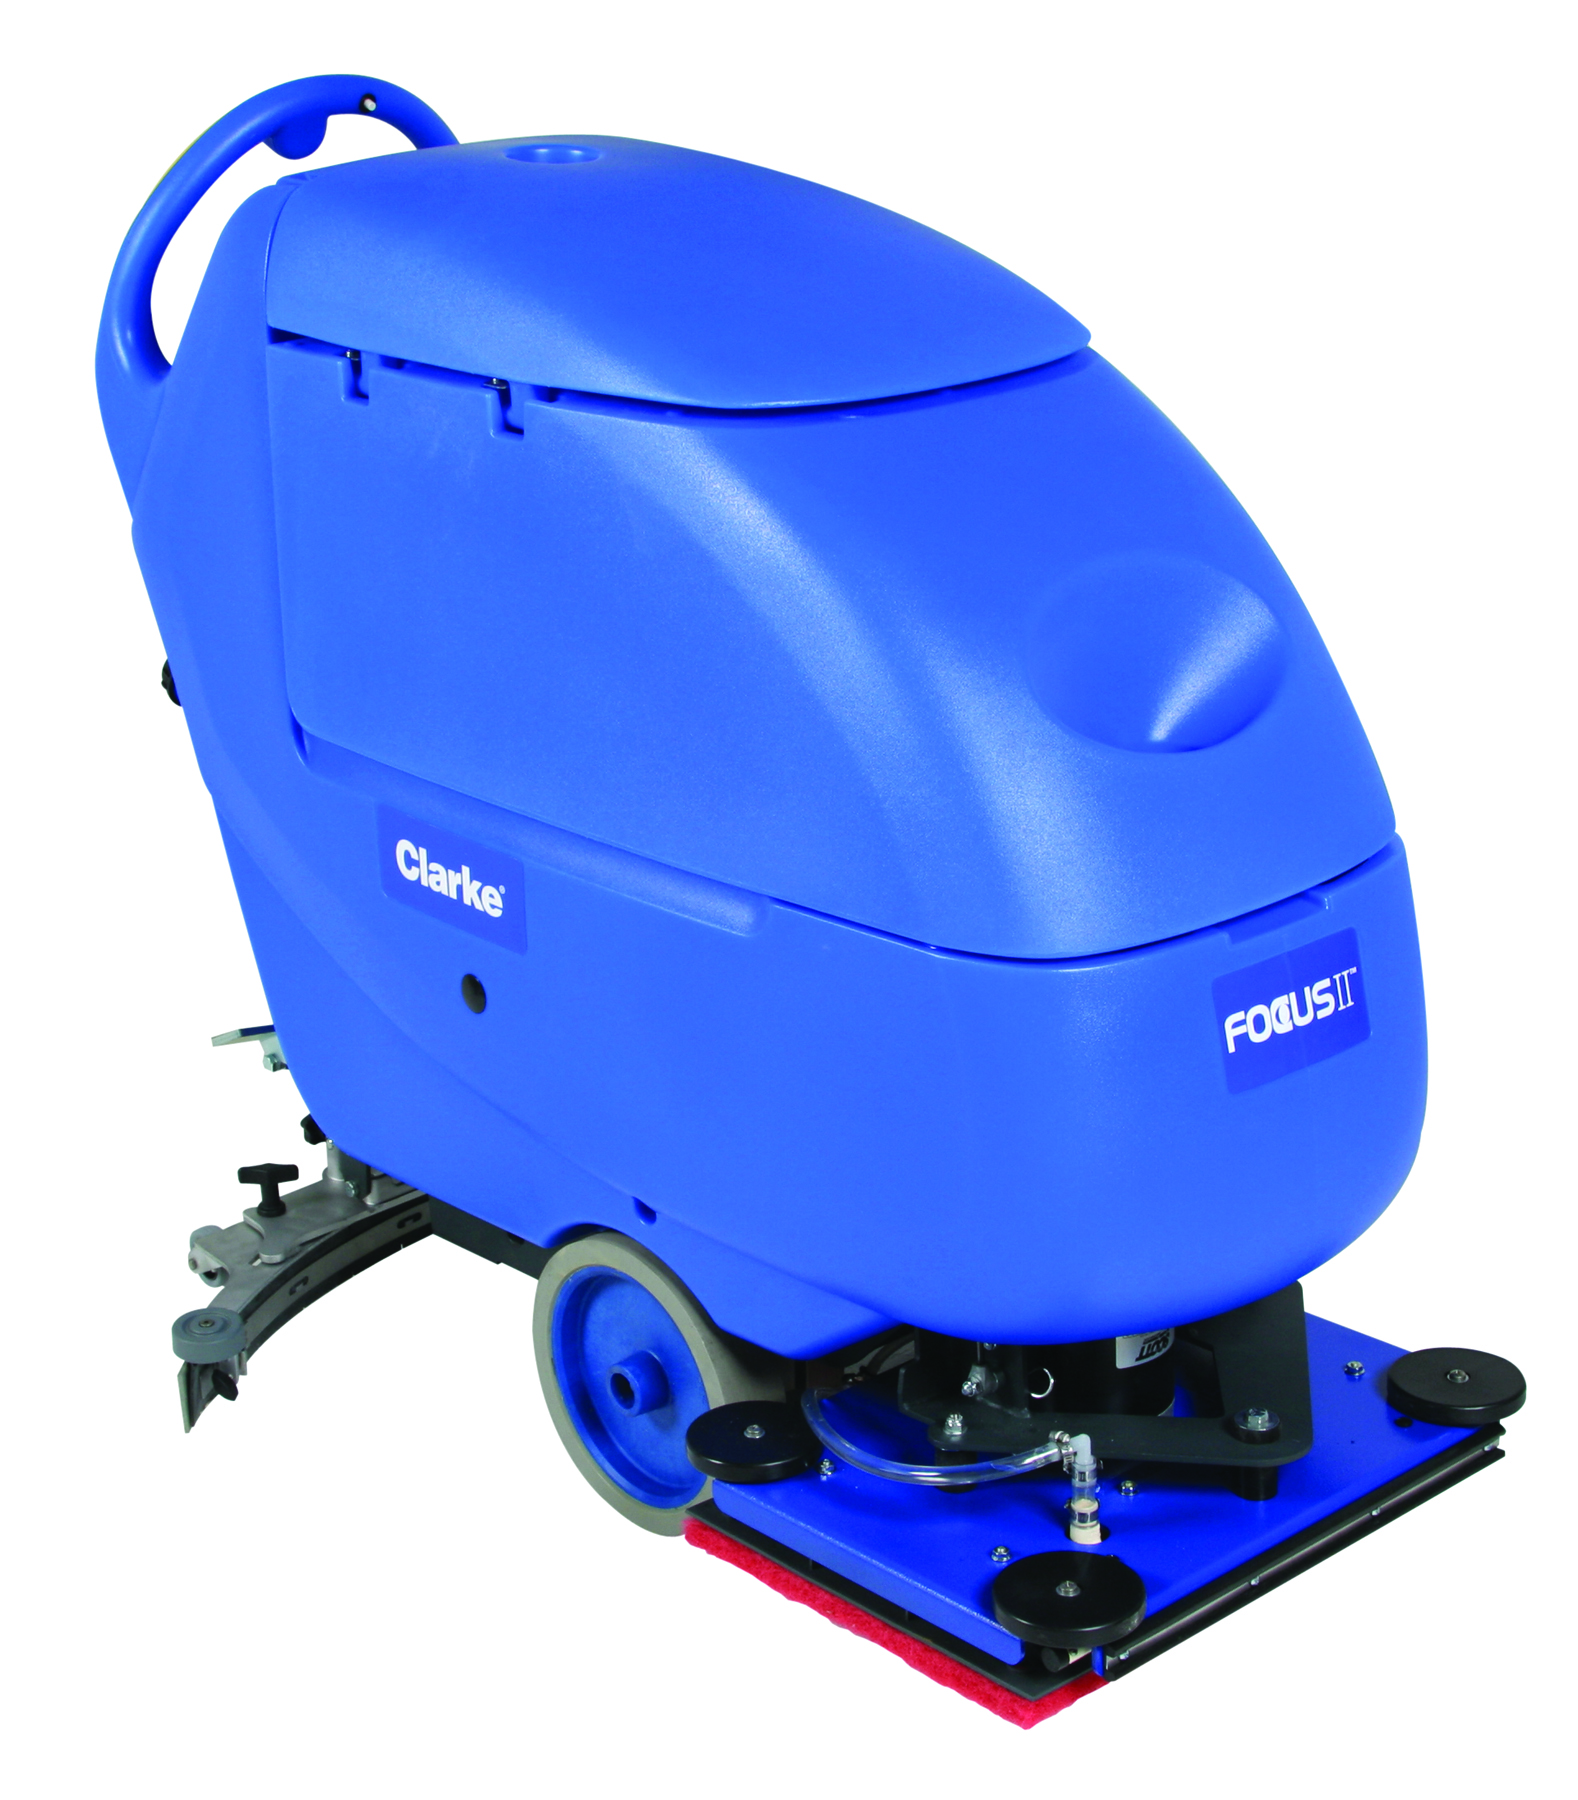 Focus II Compact autoscrubber with BOOST,